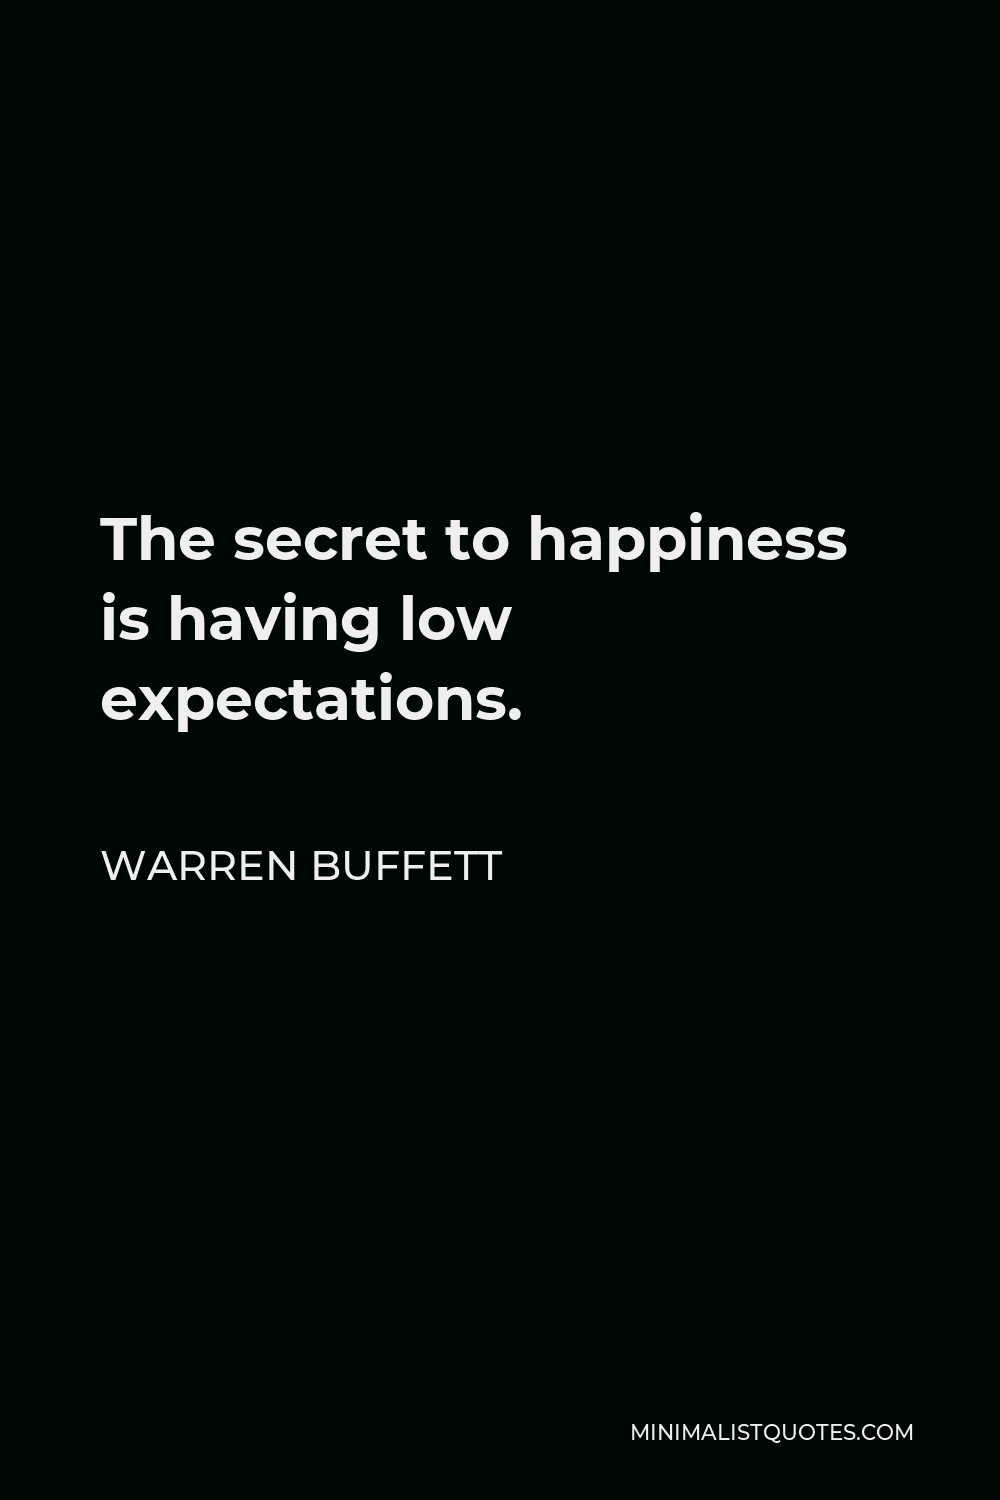 Warren Buffett Quote: The secret to happiness is having low expectations.